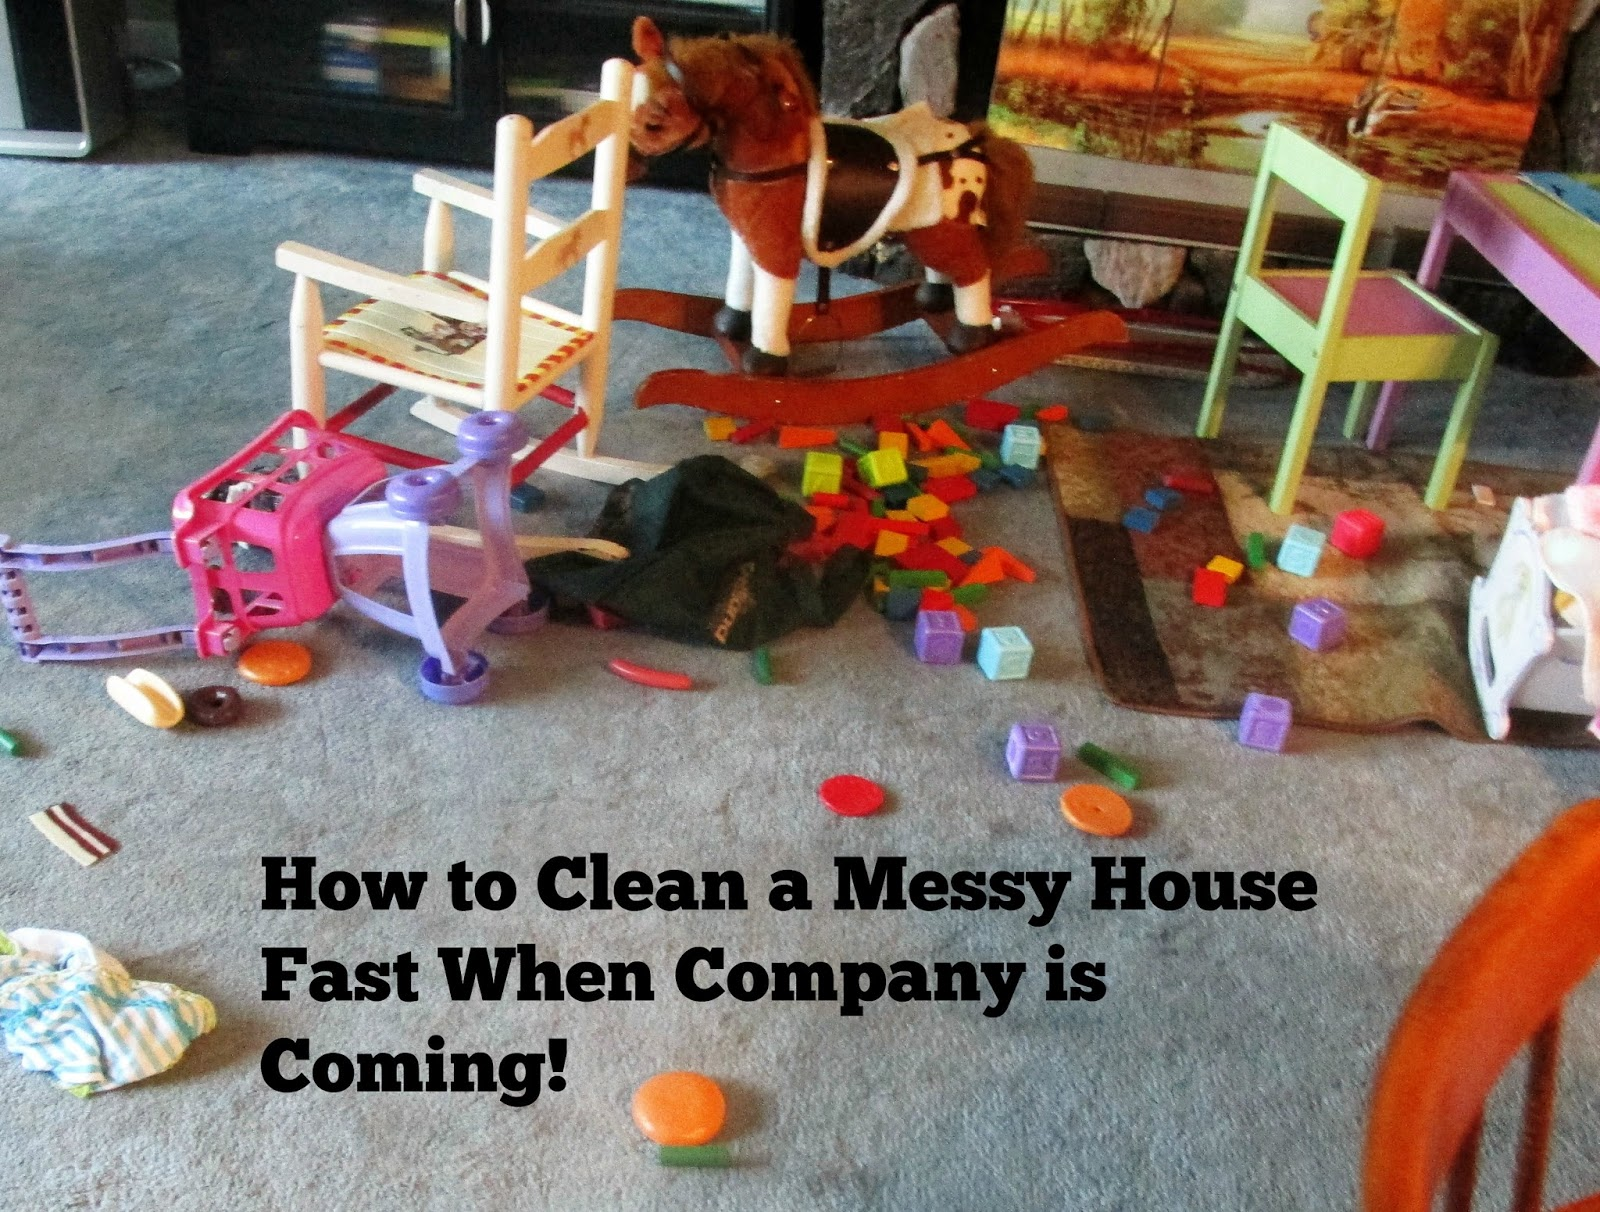 How To Clean Your House Fast vickie's kitchen and garden: how to clean a messy house fast when